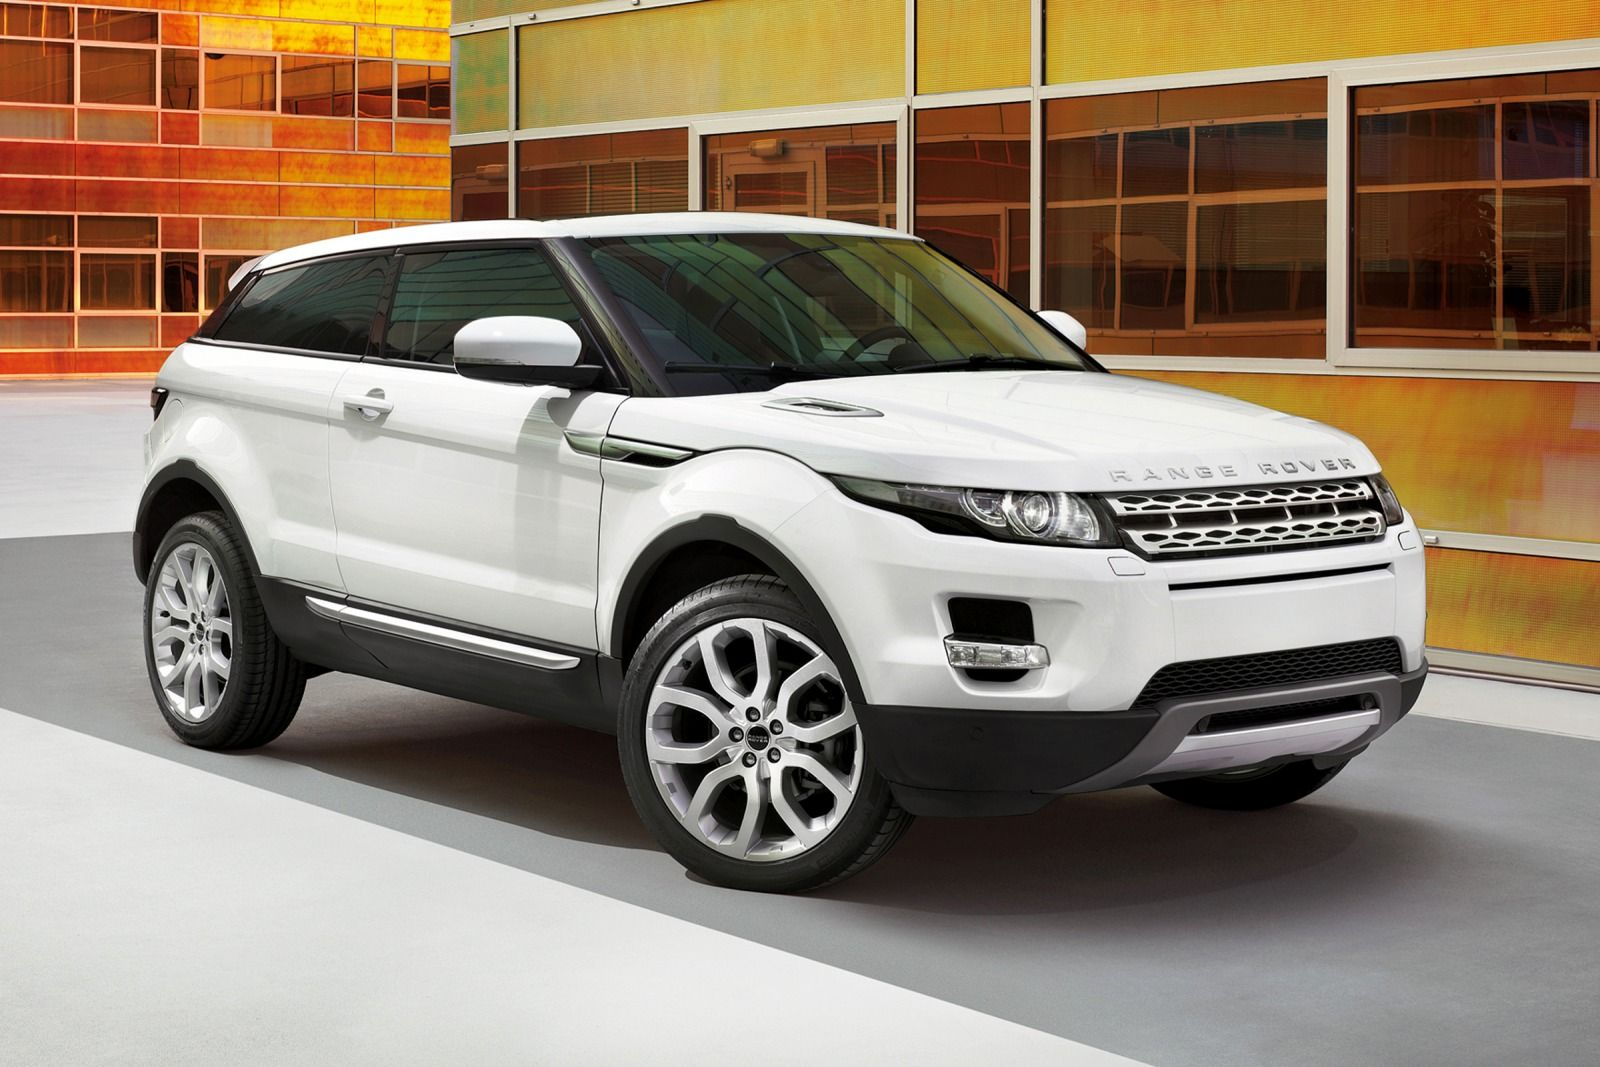 2015 land rover range rover evoque information and. Black Bedroom Furniture Sets. Home Design Ideas